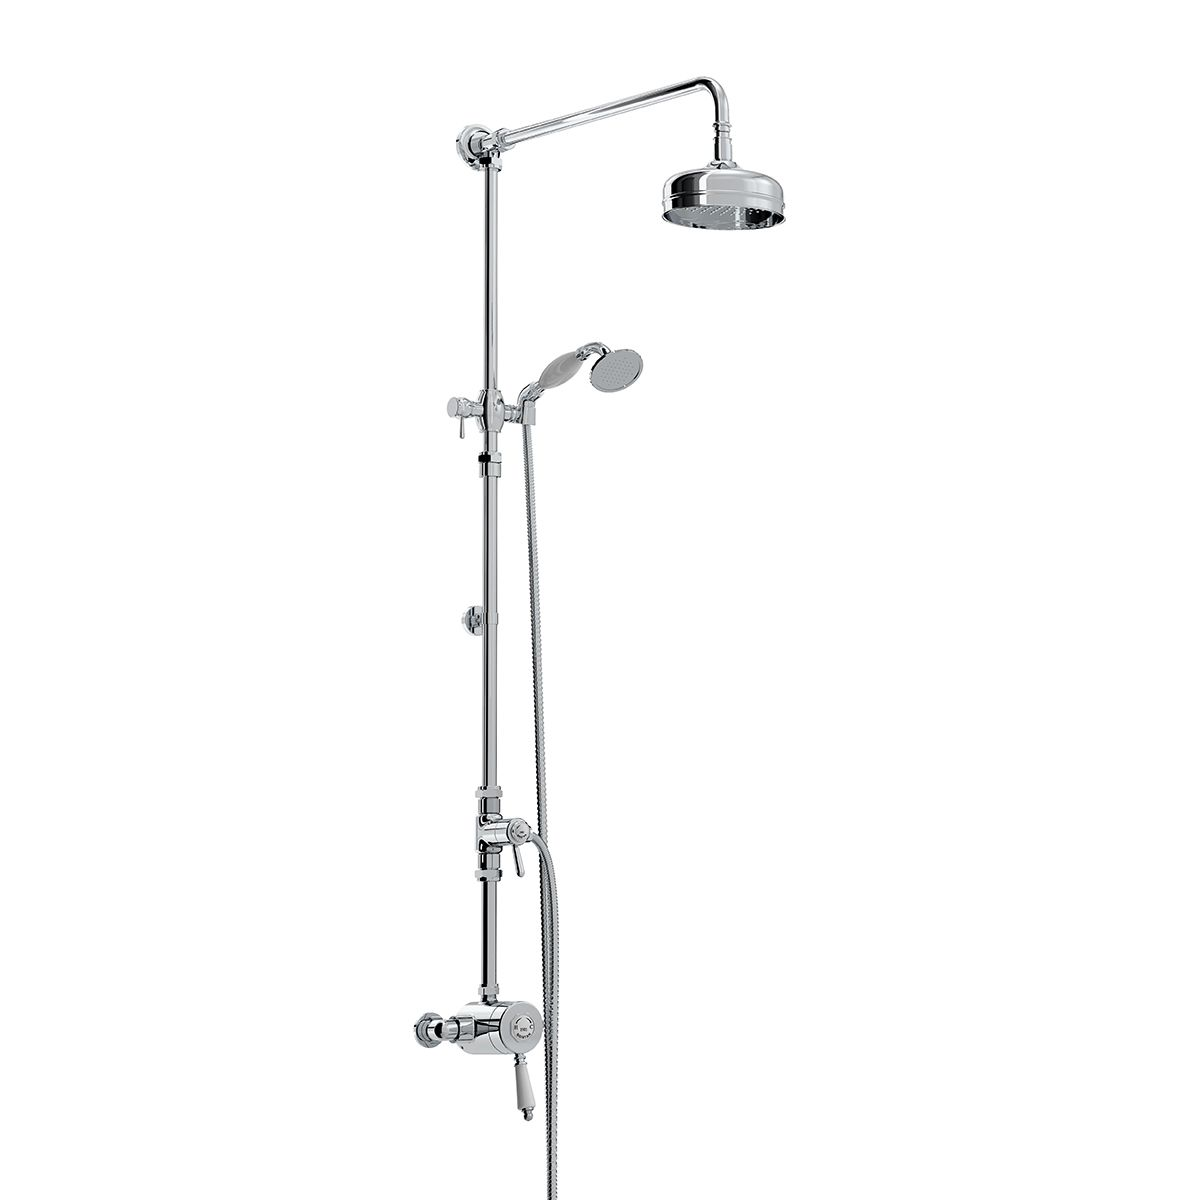 Bristan 1901 Single Control Thermostatic Exposed Shower Valve Kit ...